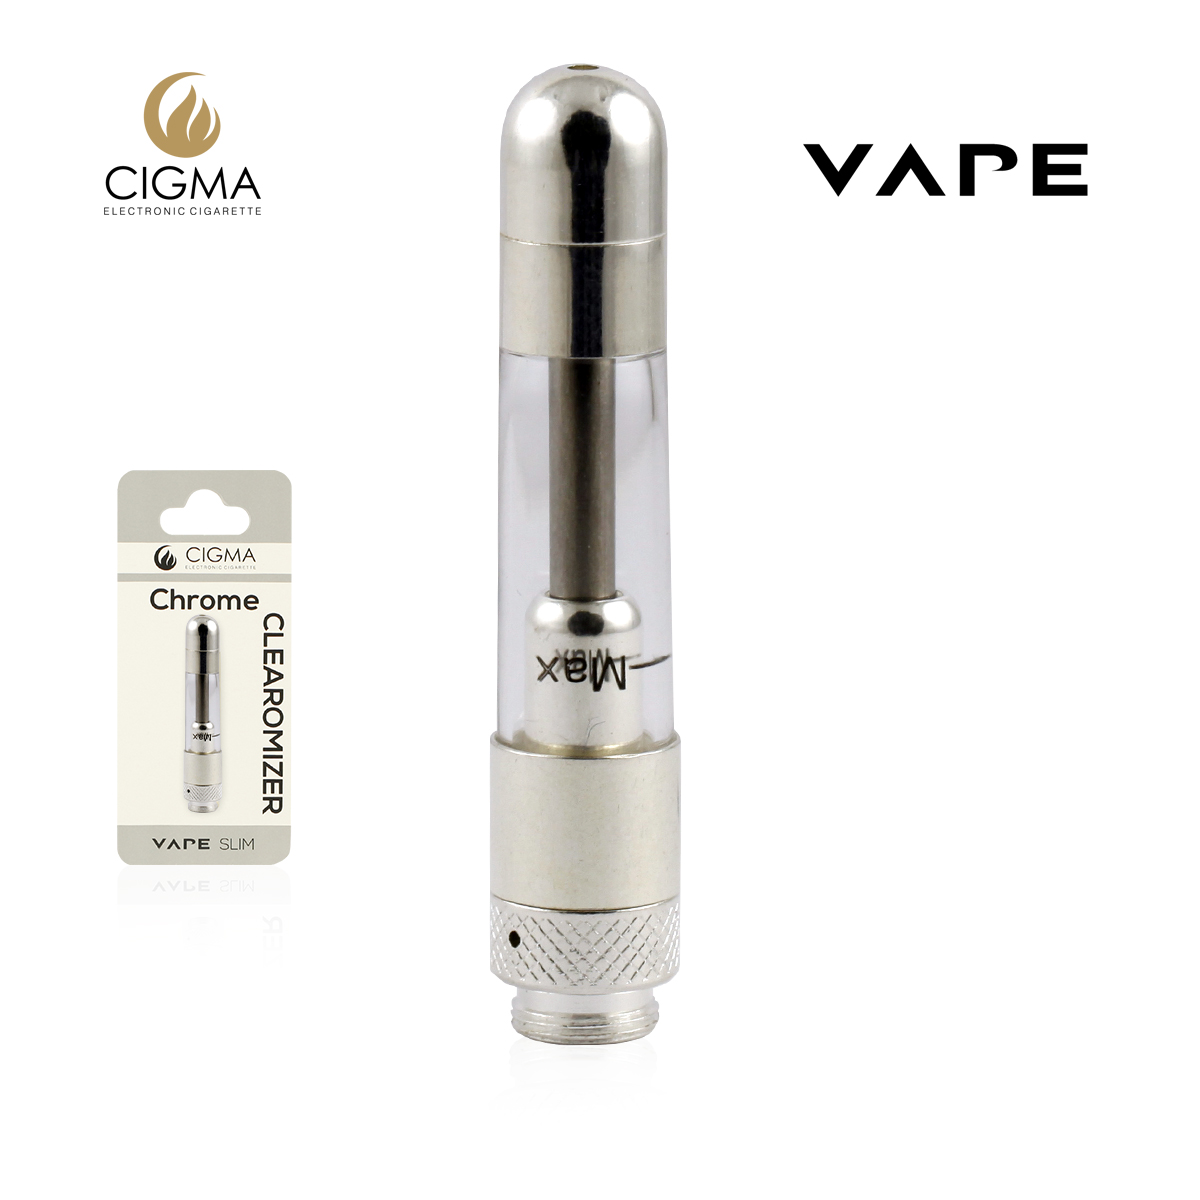 VAPE CLEAROMIZER SLIM CHROME